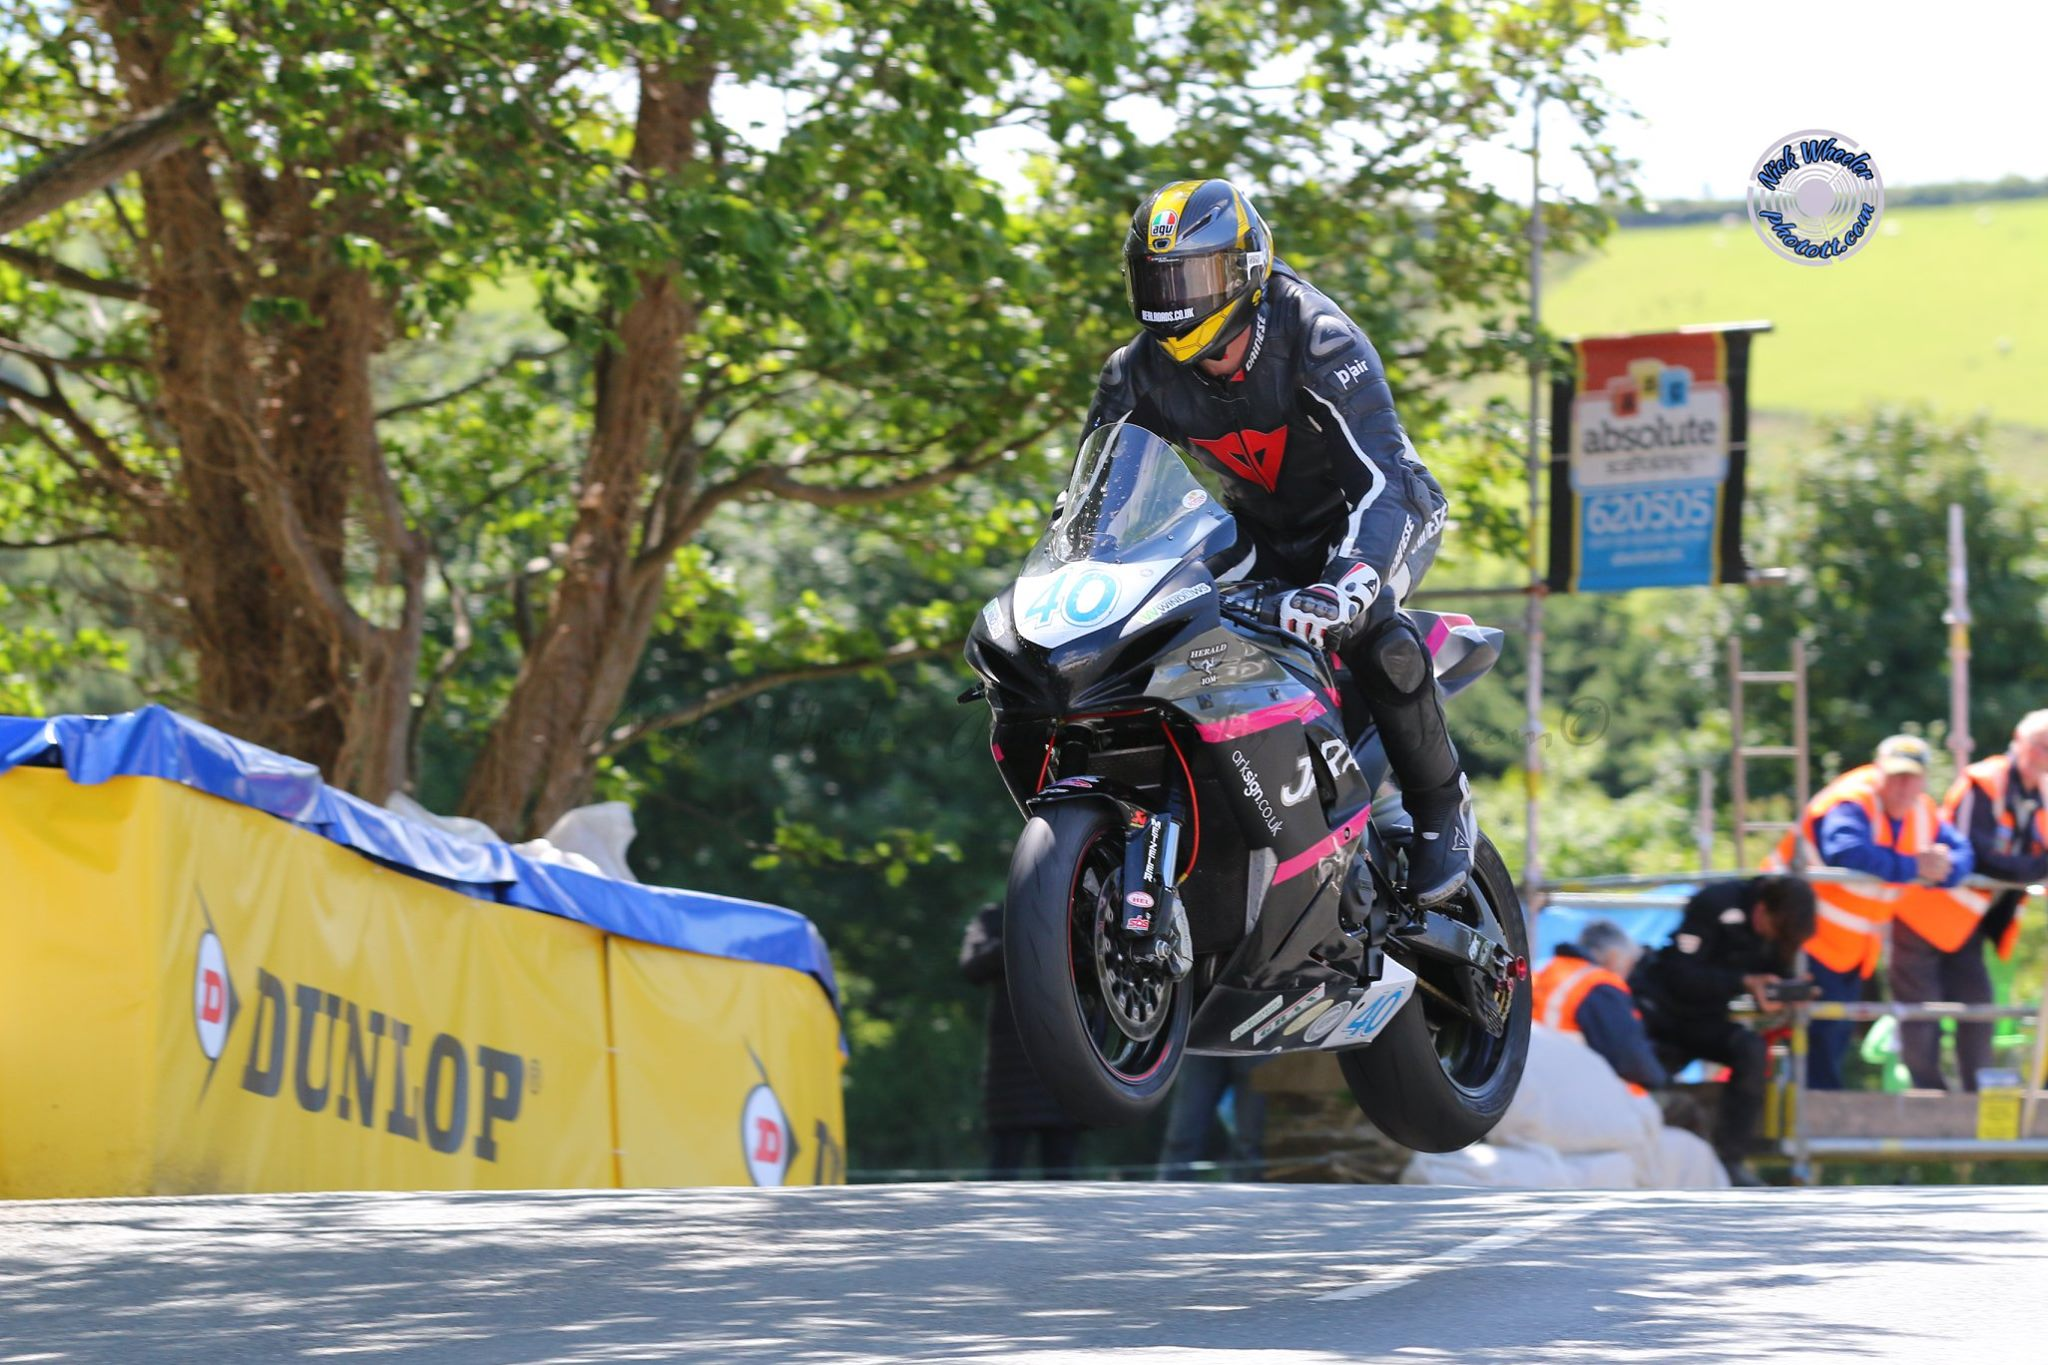 TT 2020 Latest: Multi Manx GP Rostrum Finisher Akroyd Joins Peoples Bike Team